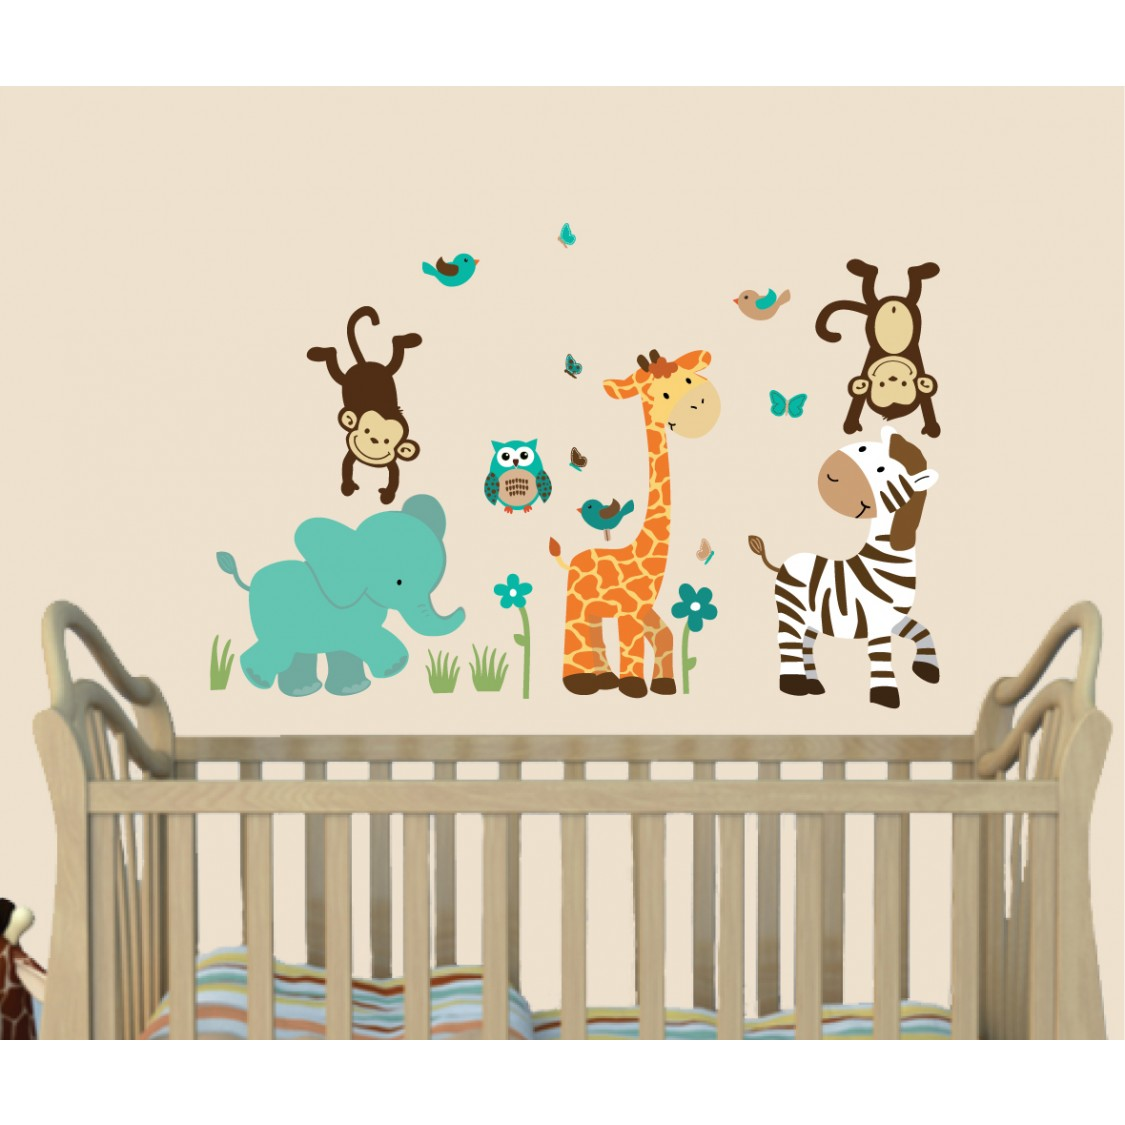 Teal Safari Wall Stickers With Giraffe Wall Decor For Children